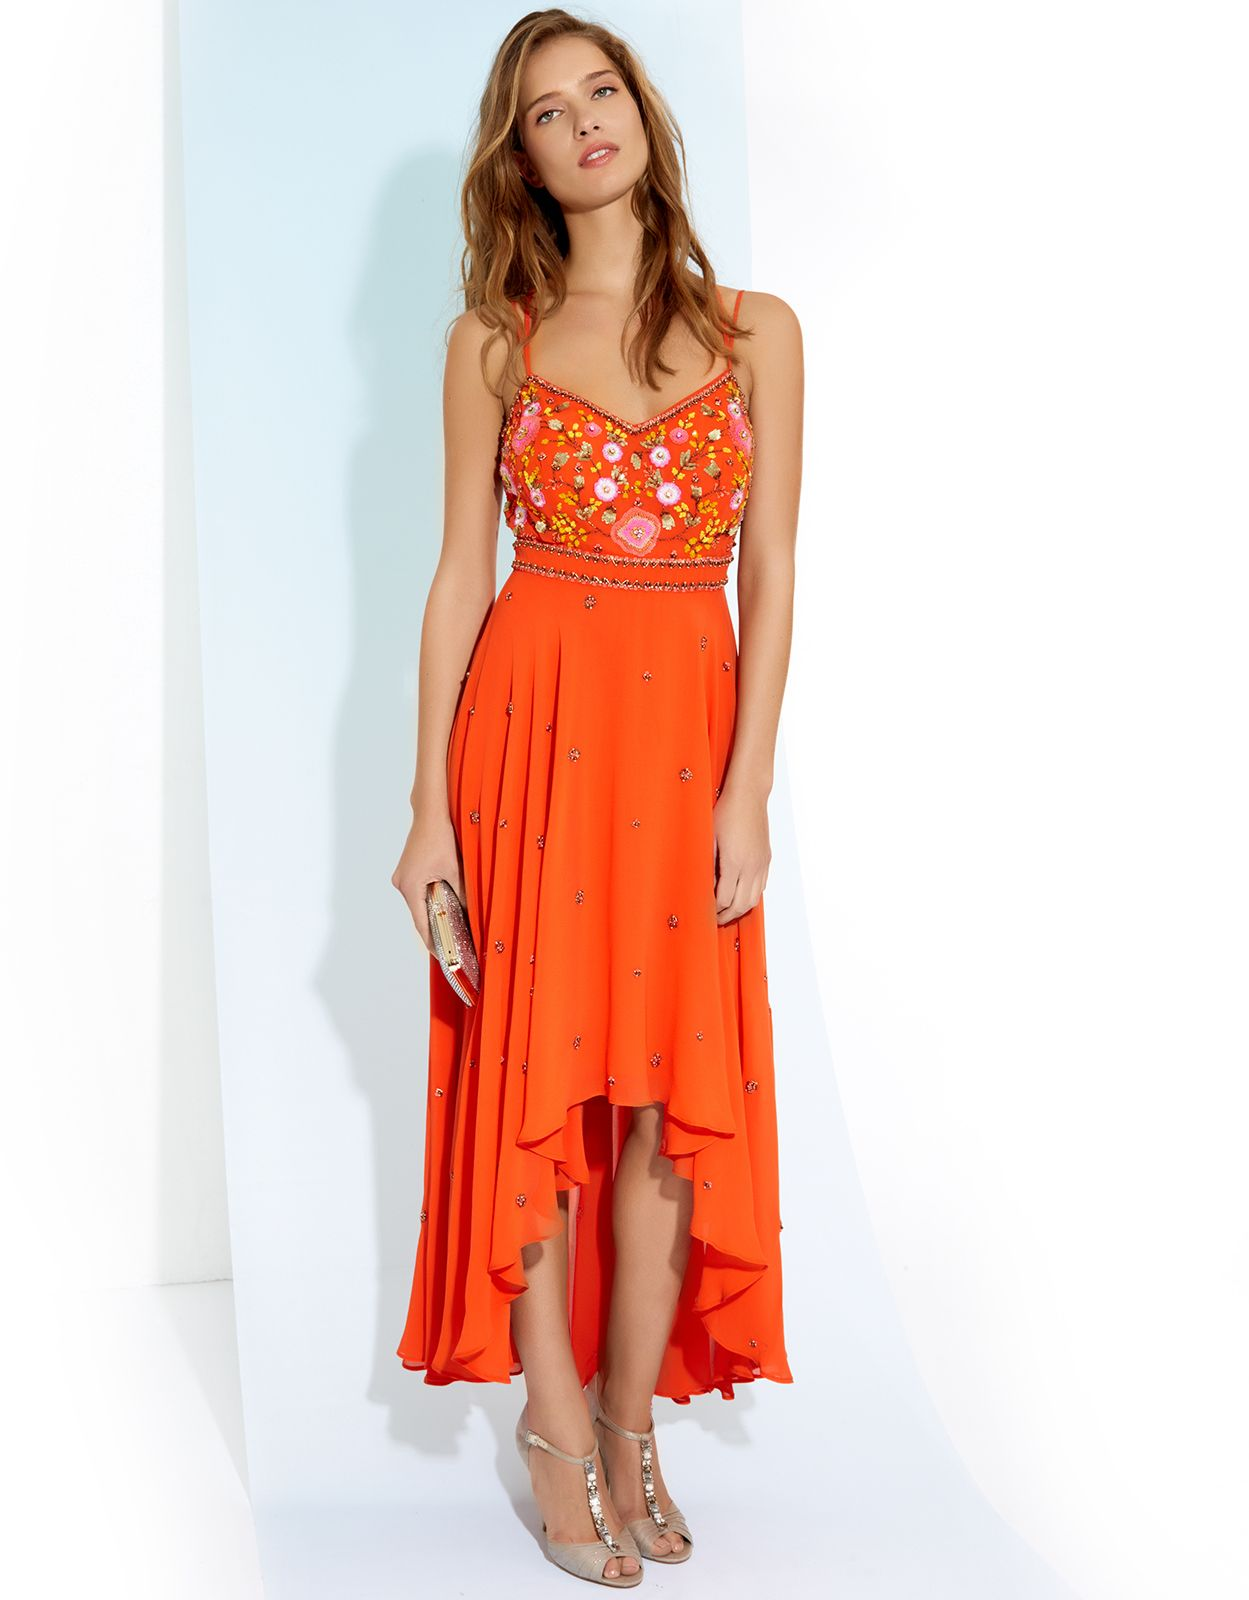 Monsoon Maldives Hilo Dress Hilo Dresses Pinterest Monsoon Summer Wedding Outfits And